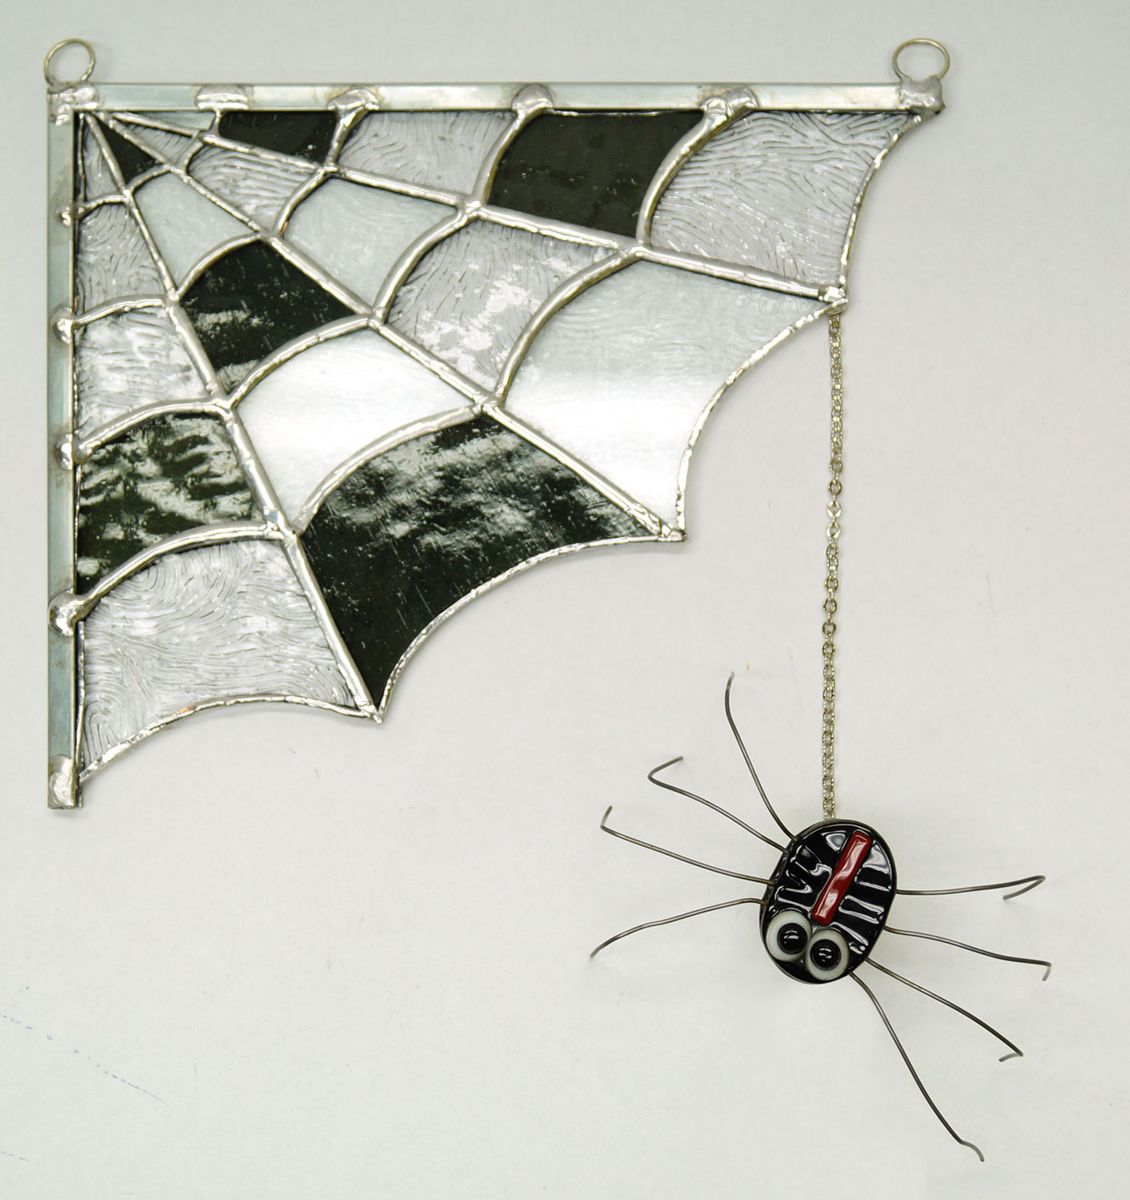 Hang Spider from Panel